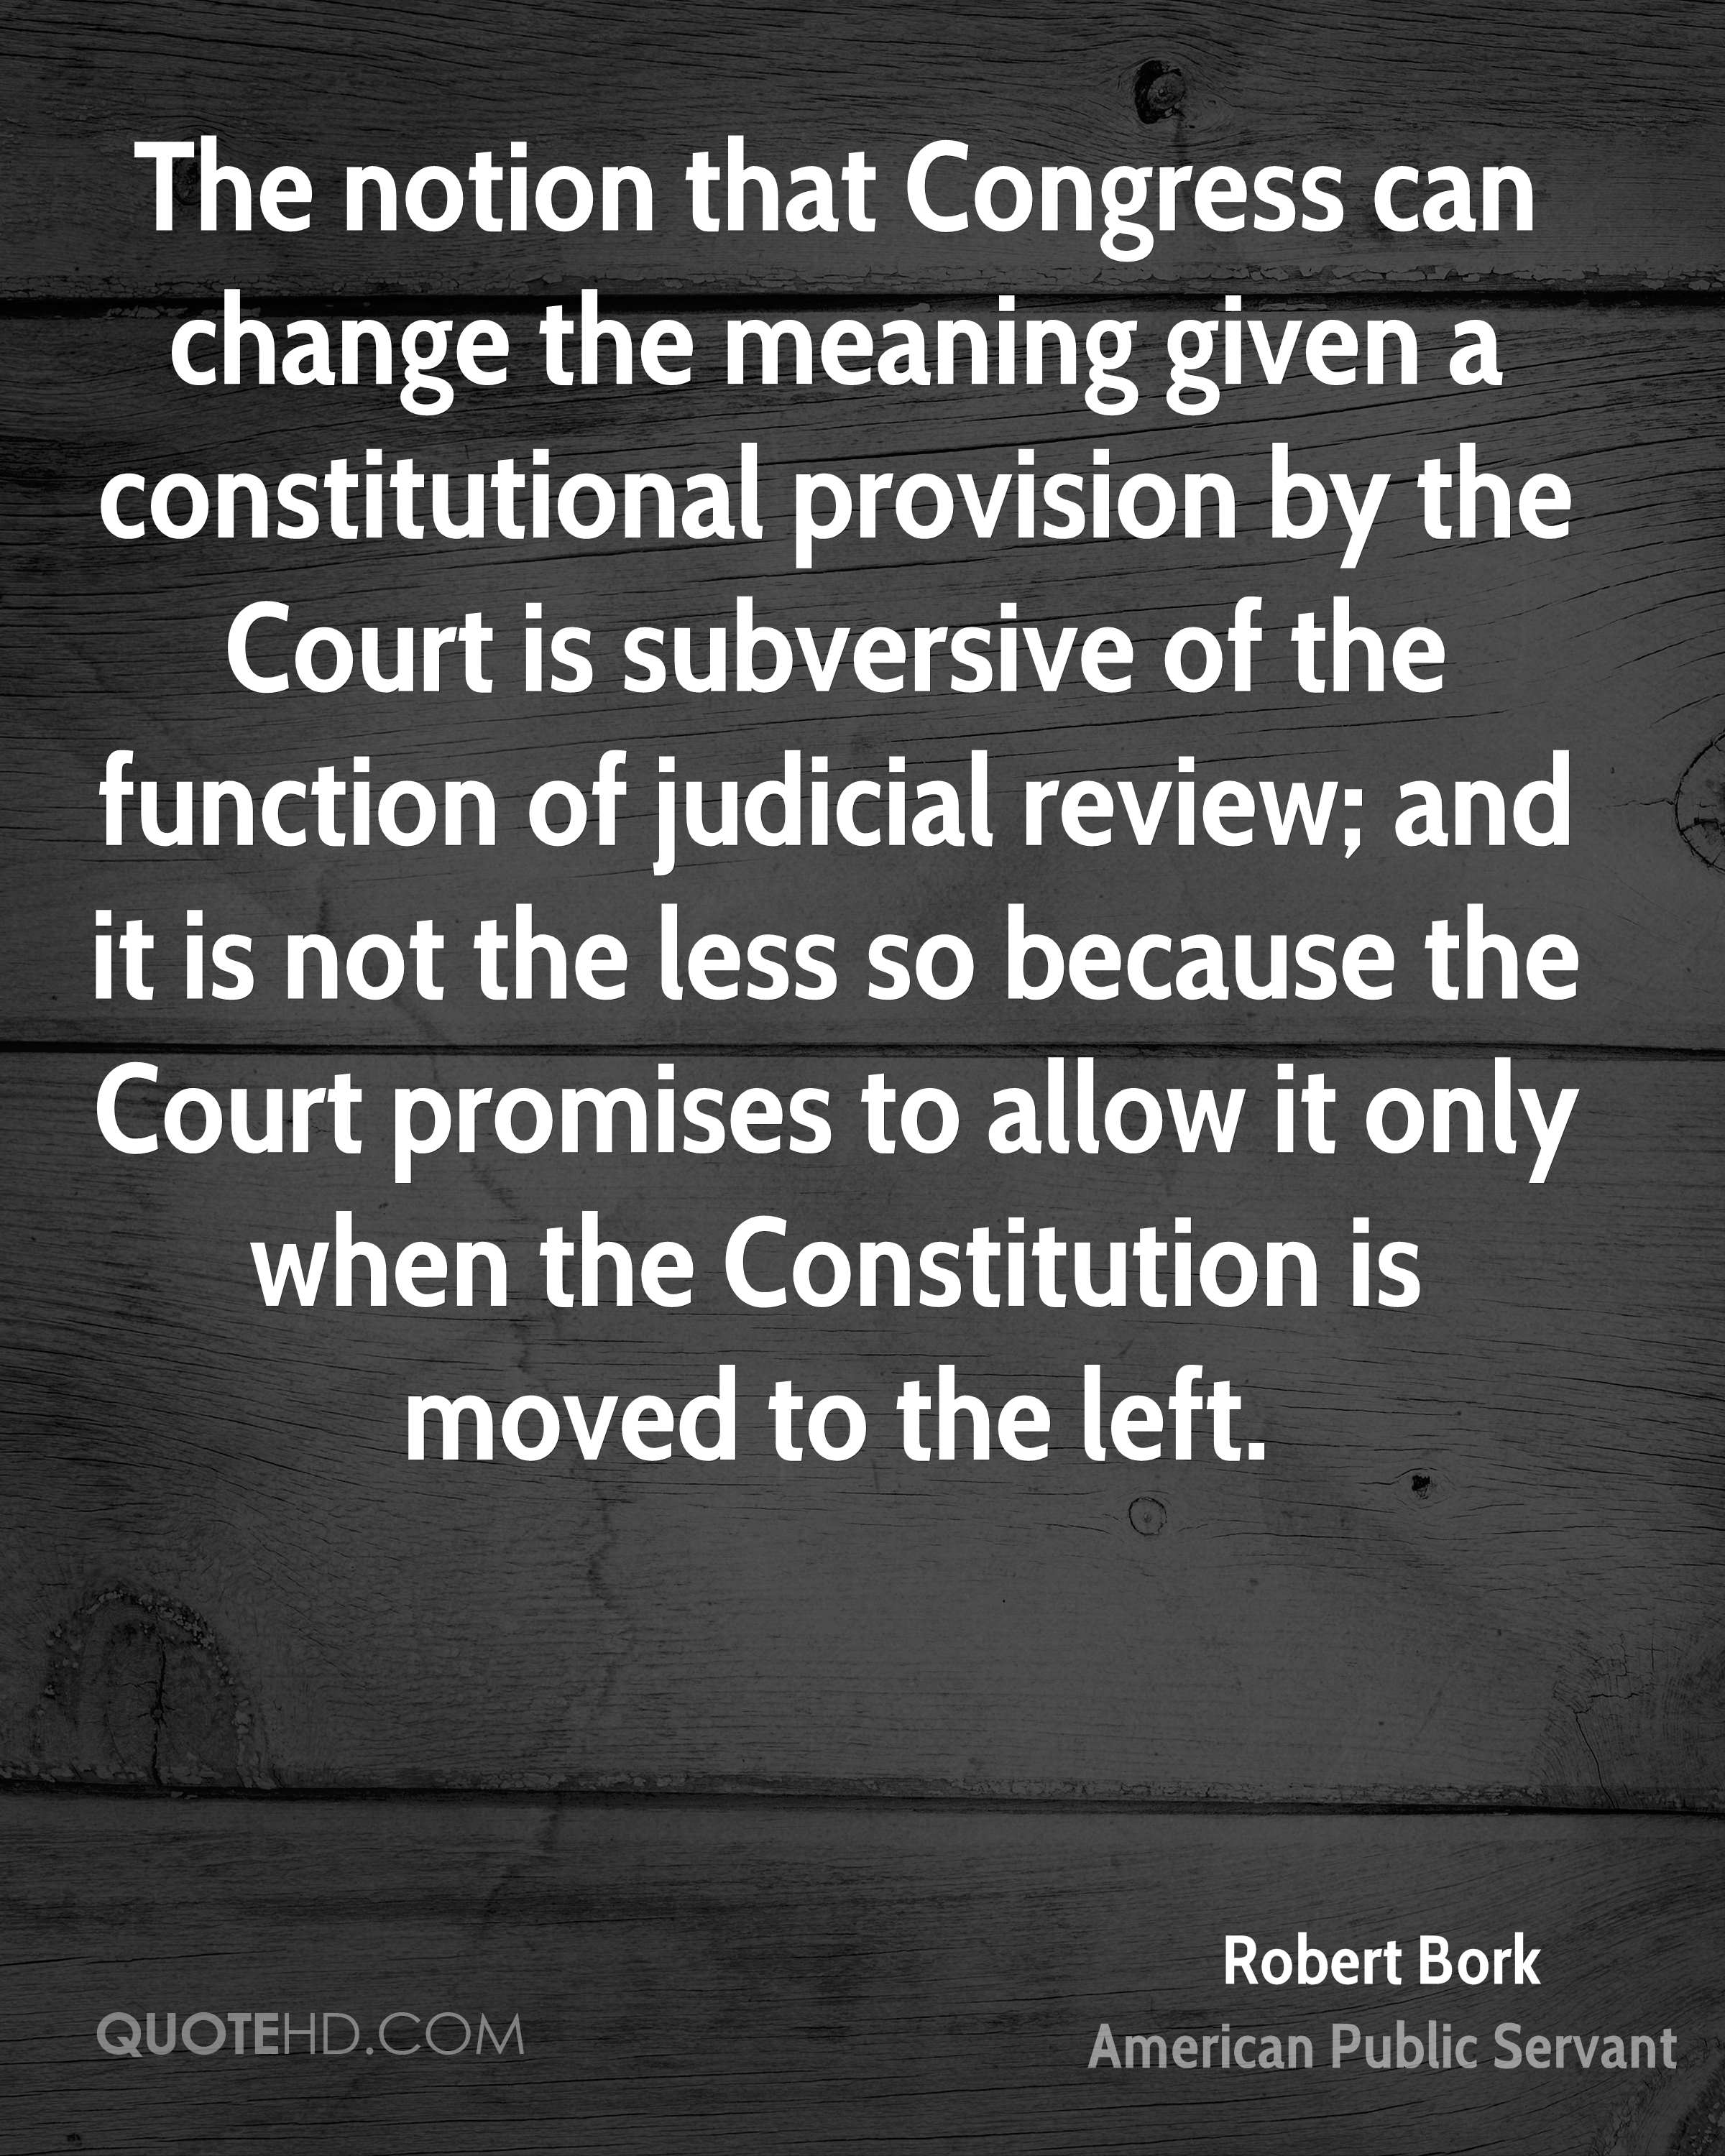 The notion that Congress can change the meaning given a constitutional provision by the Court is subversive of the function of judicial review; and it is not the less so because the Court promises to allow it only when the Constitution is moved to the left.